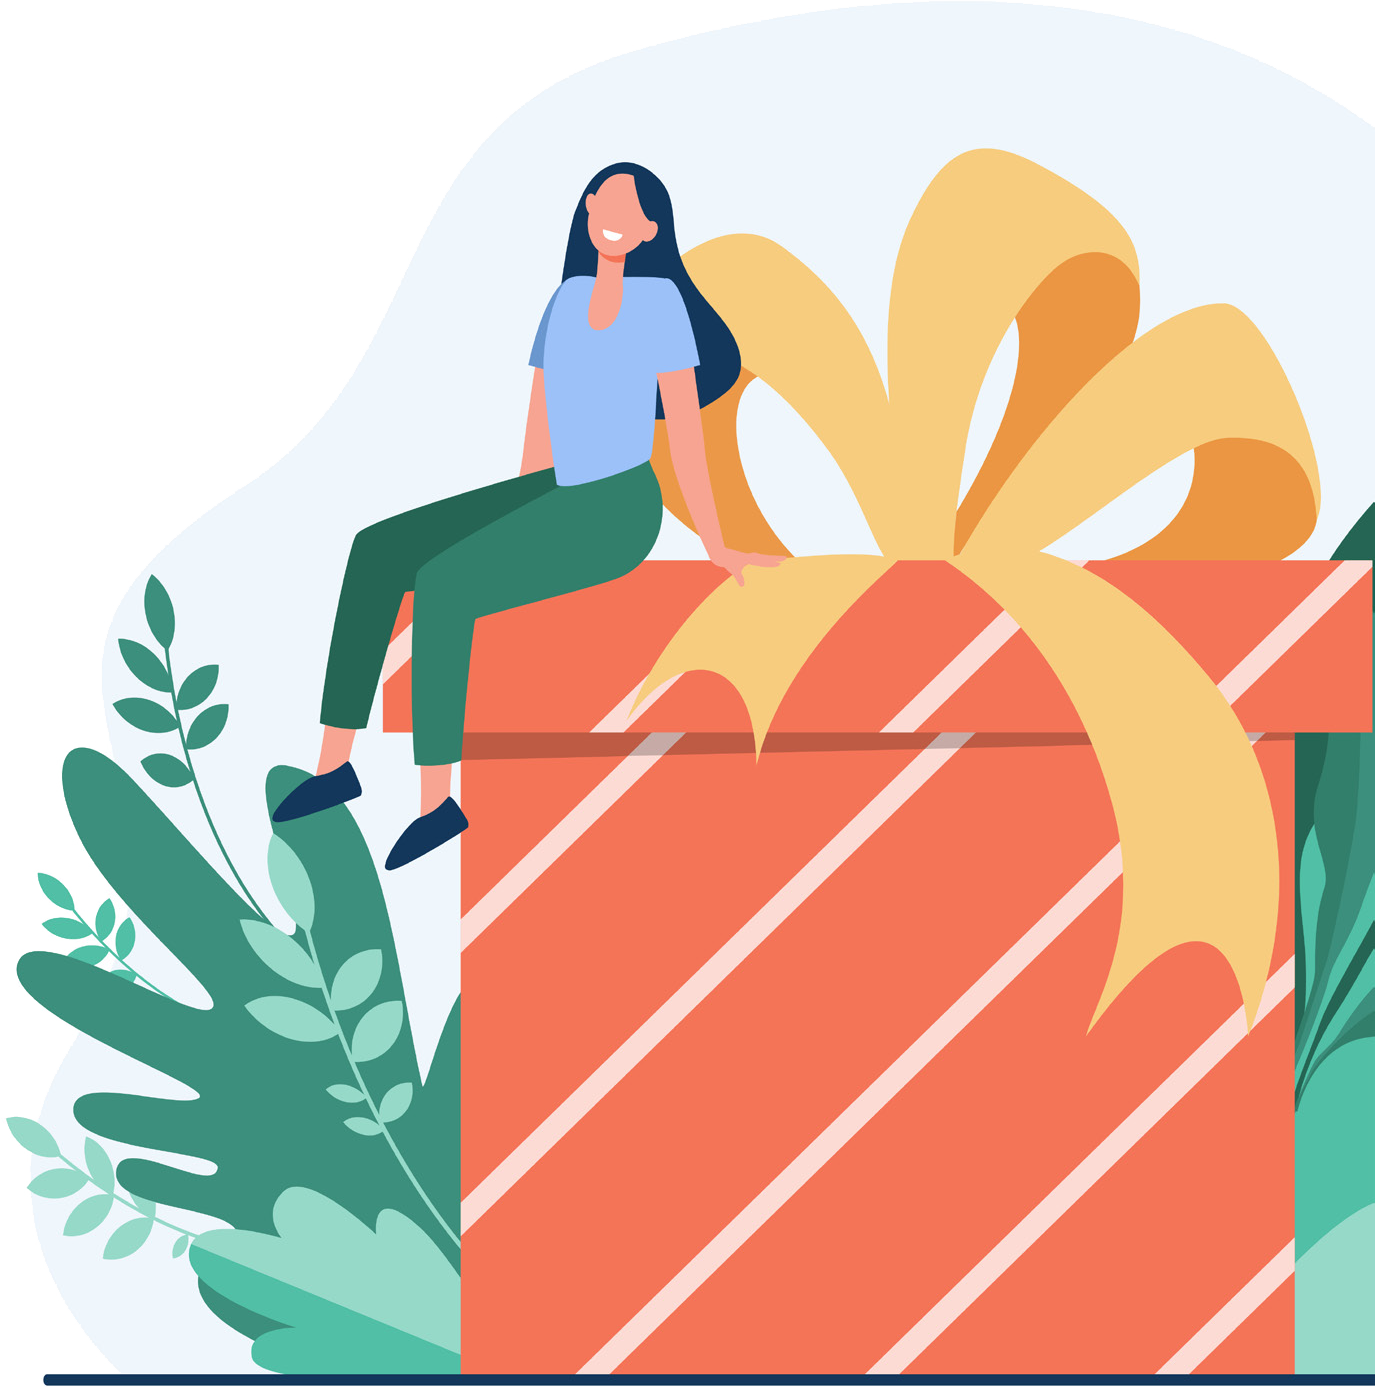 50 Gifting Ideas for Q2 2021-2